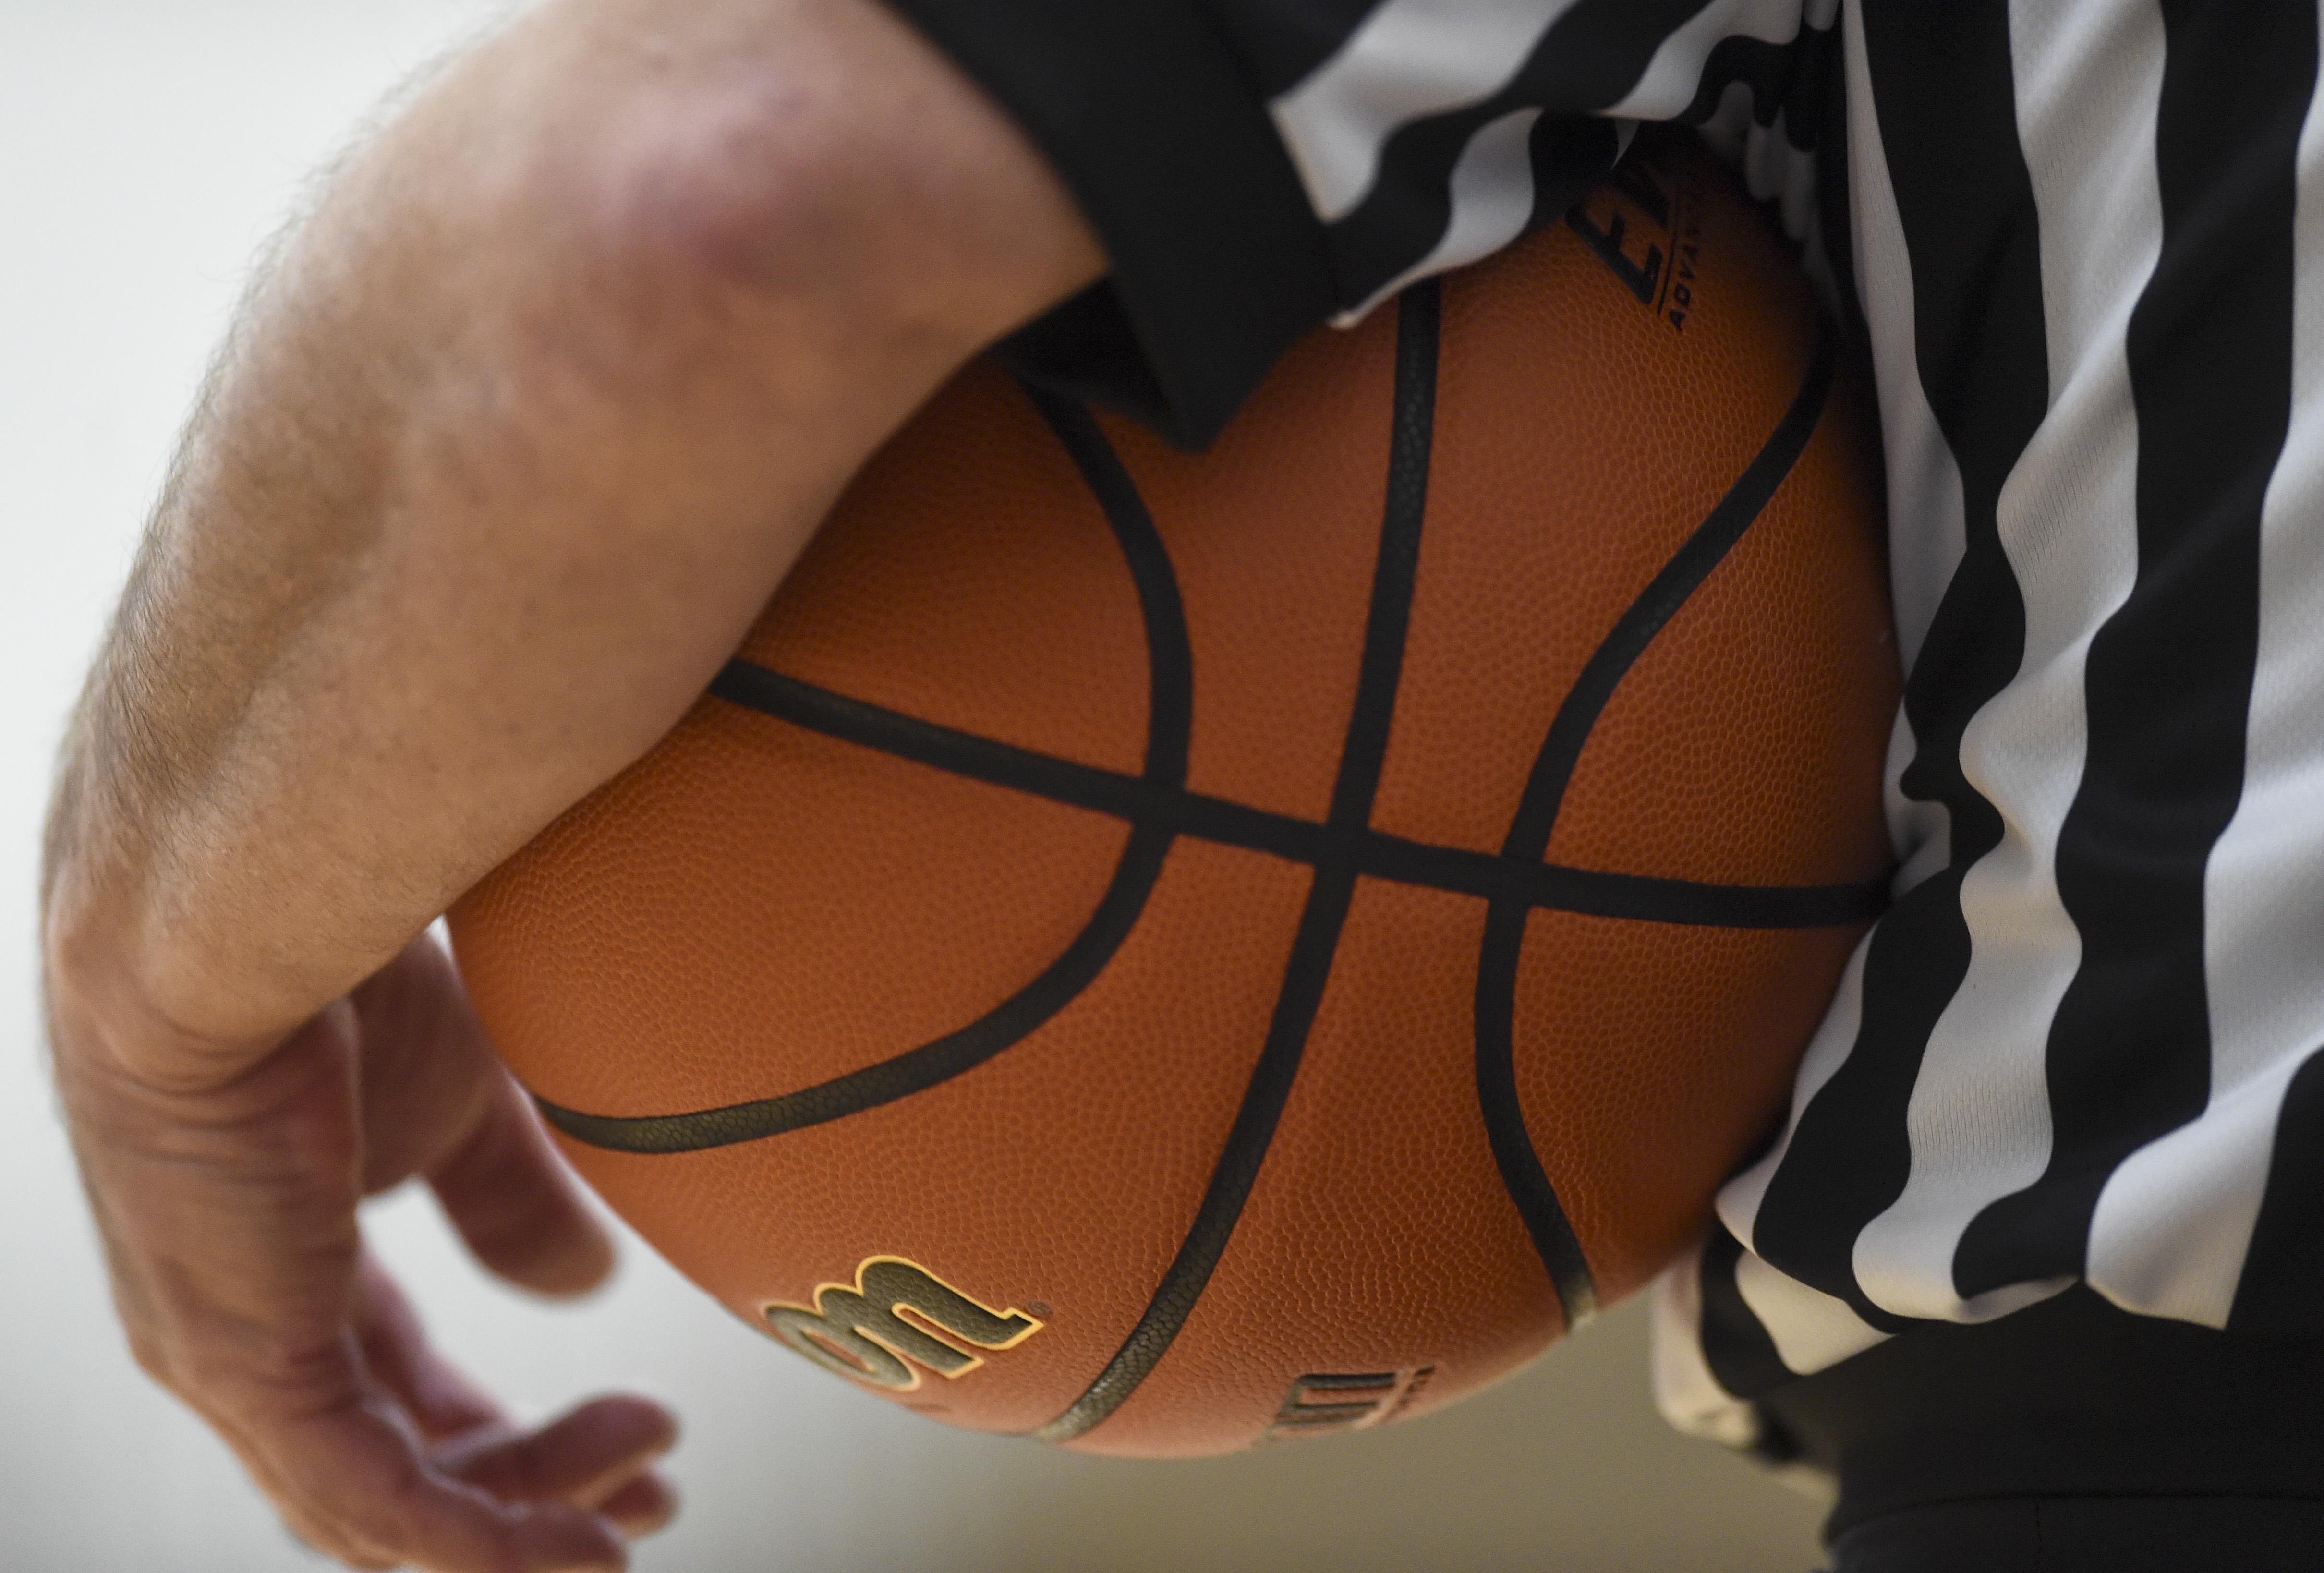 High School Basketball Game In Pennsylvania With Precautions Against COVID-19